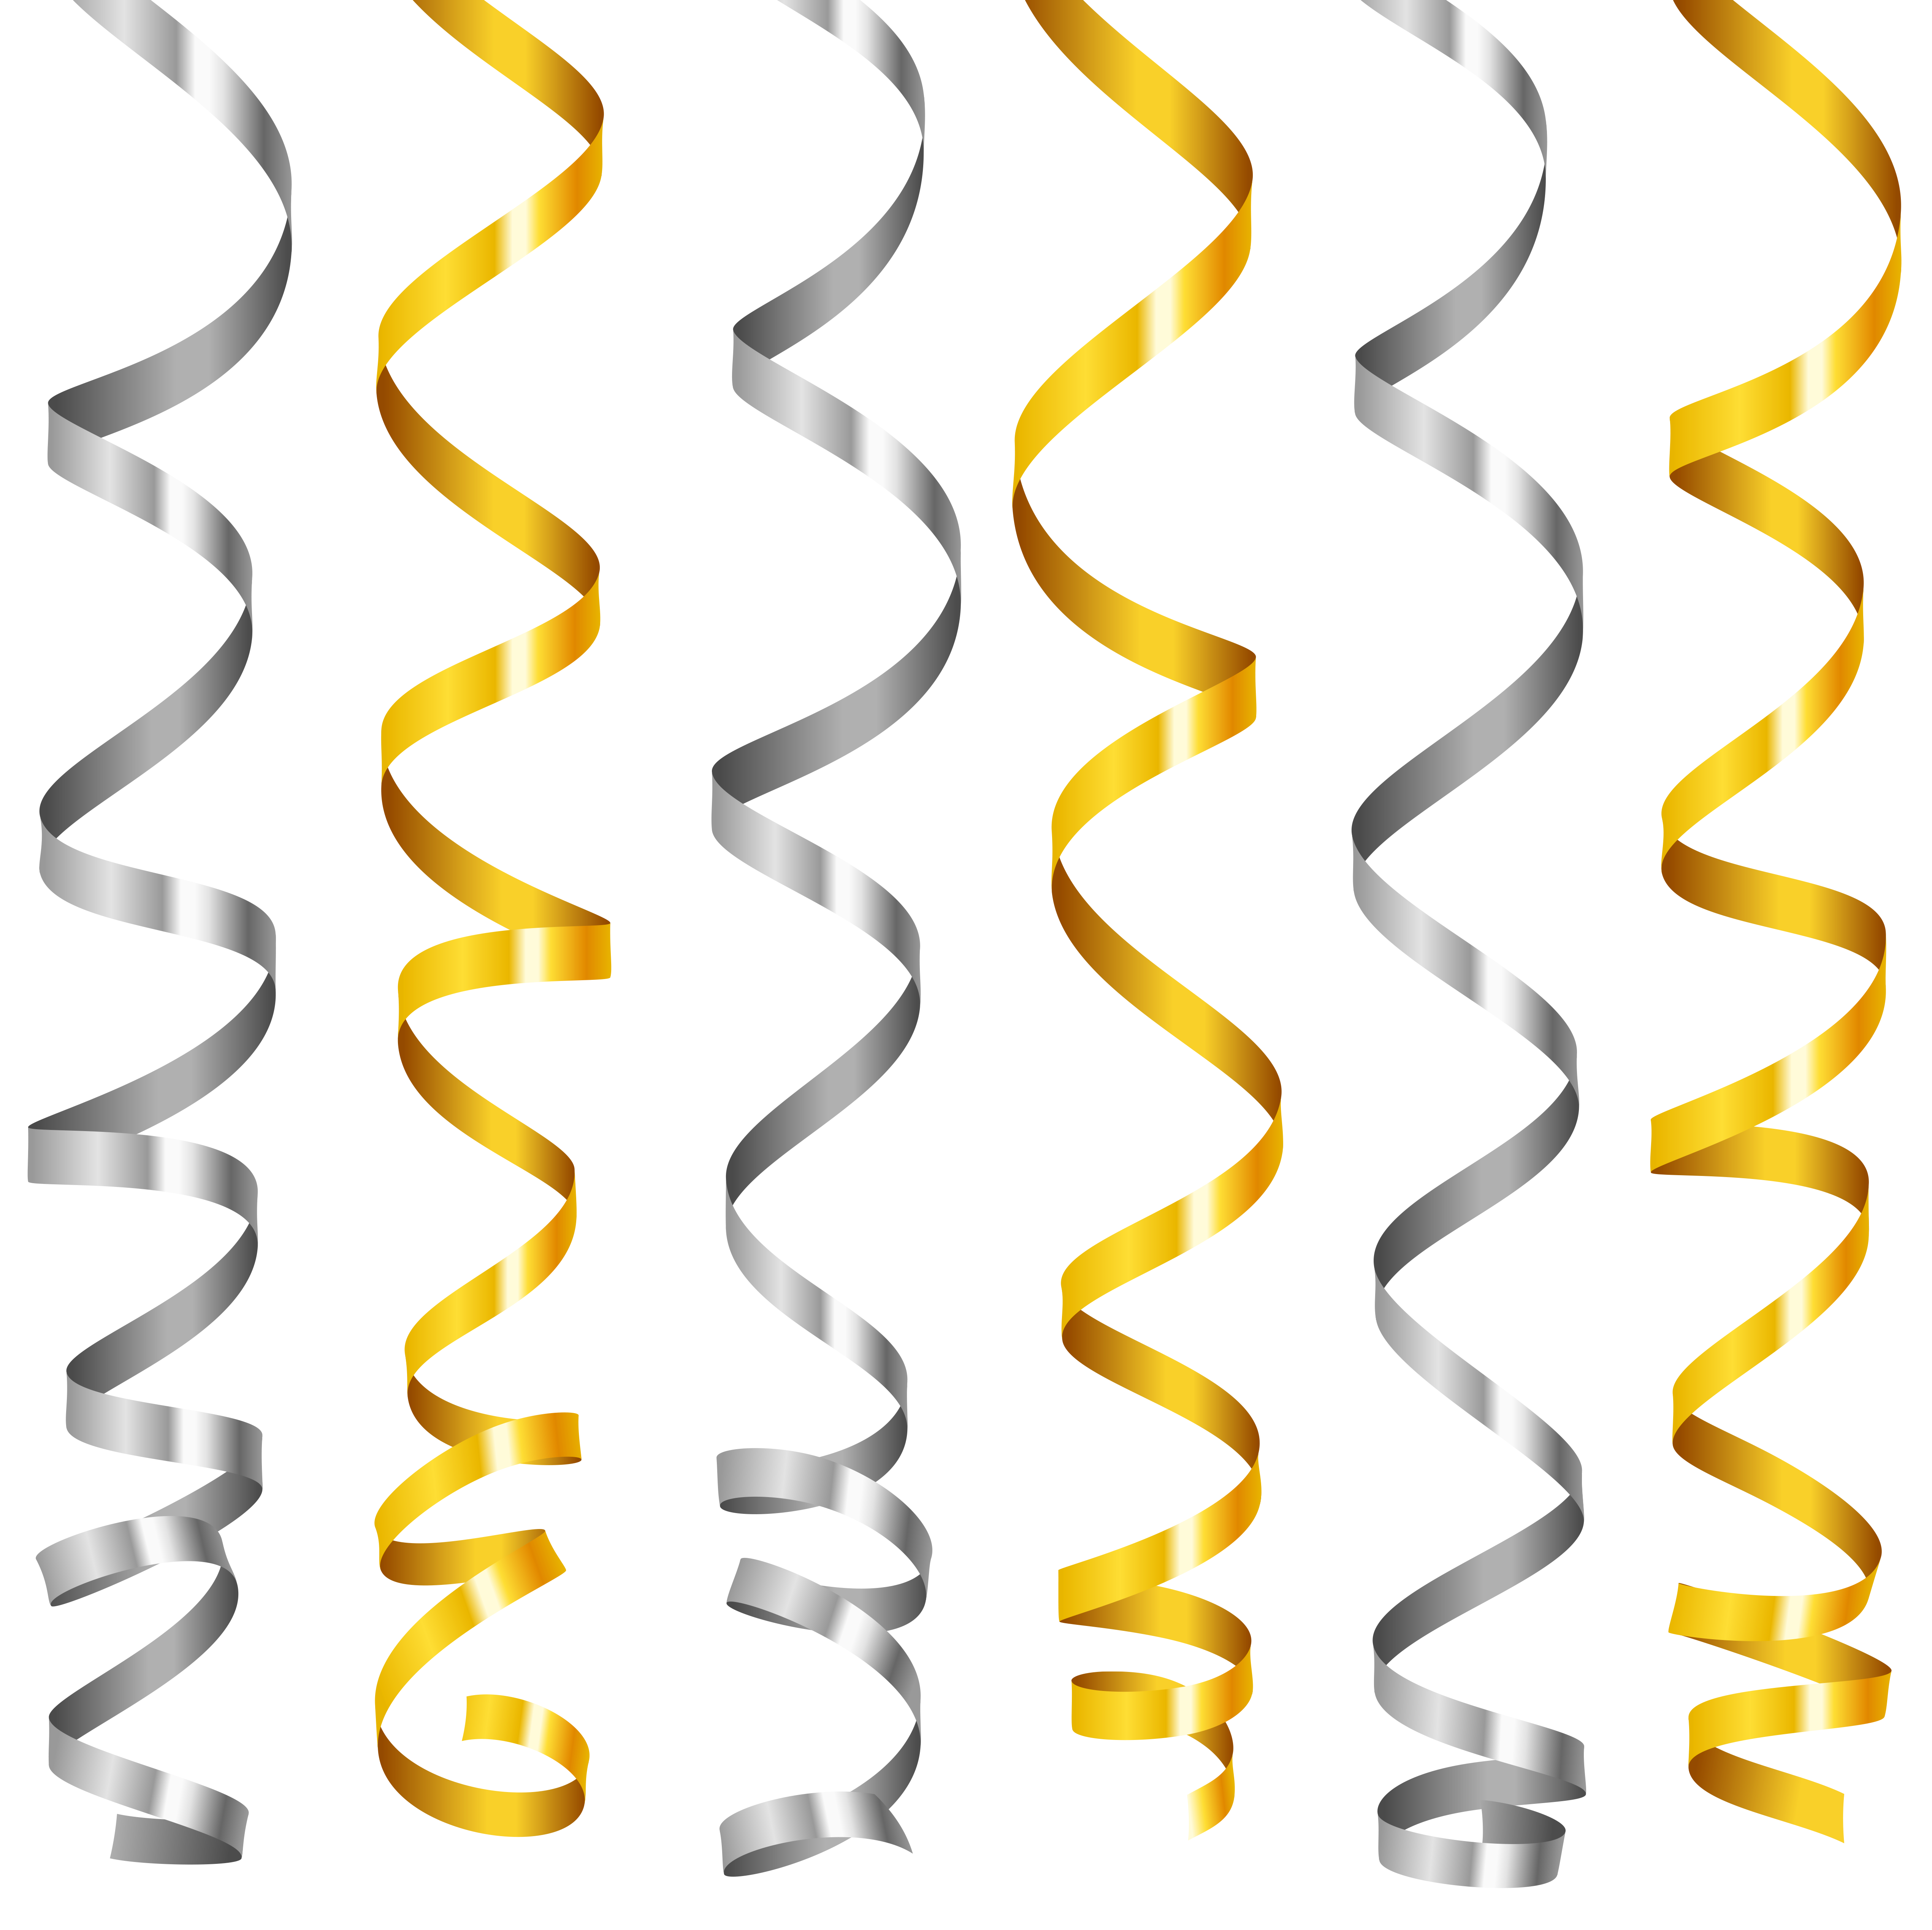 Silver and gold clipart clip royalty free download Silver and Gold Curly Ribbons PNG Clipart Image | Gallery ... clip royalty free download